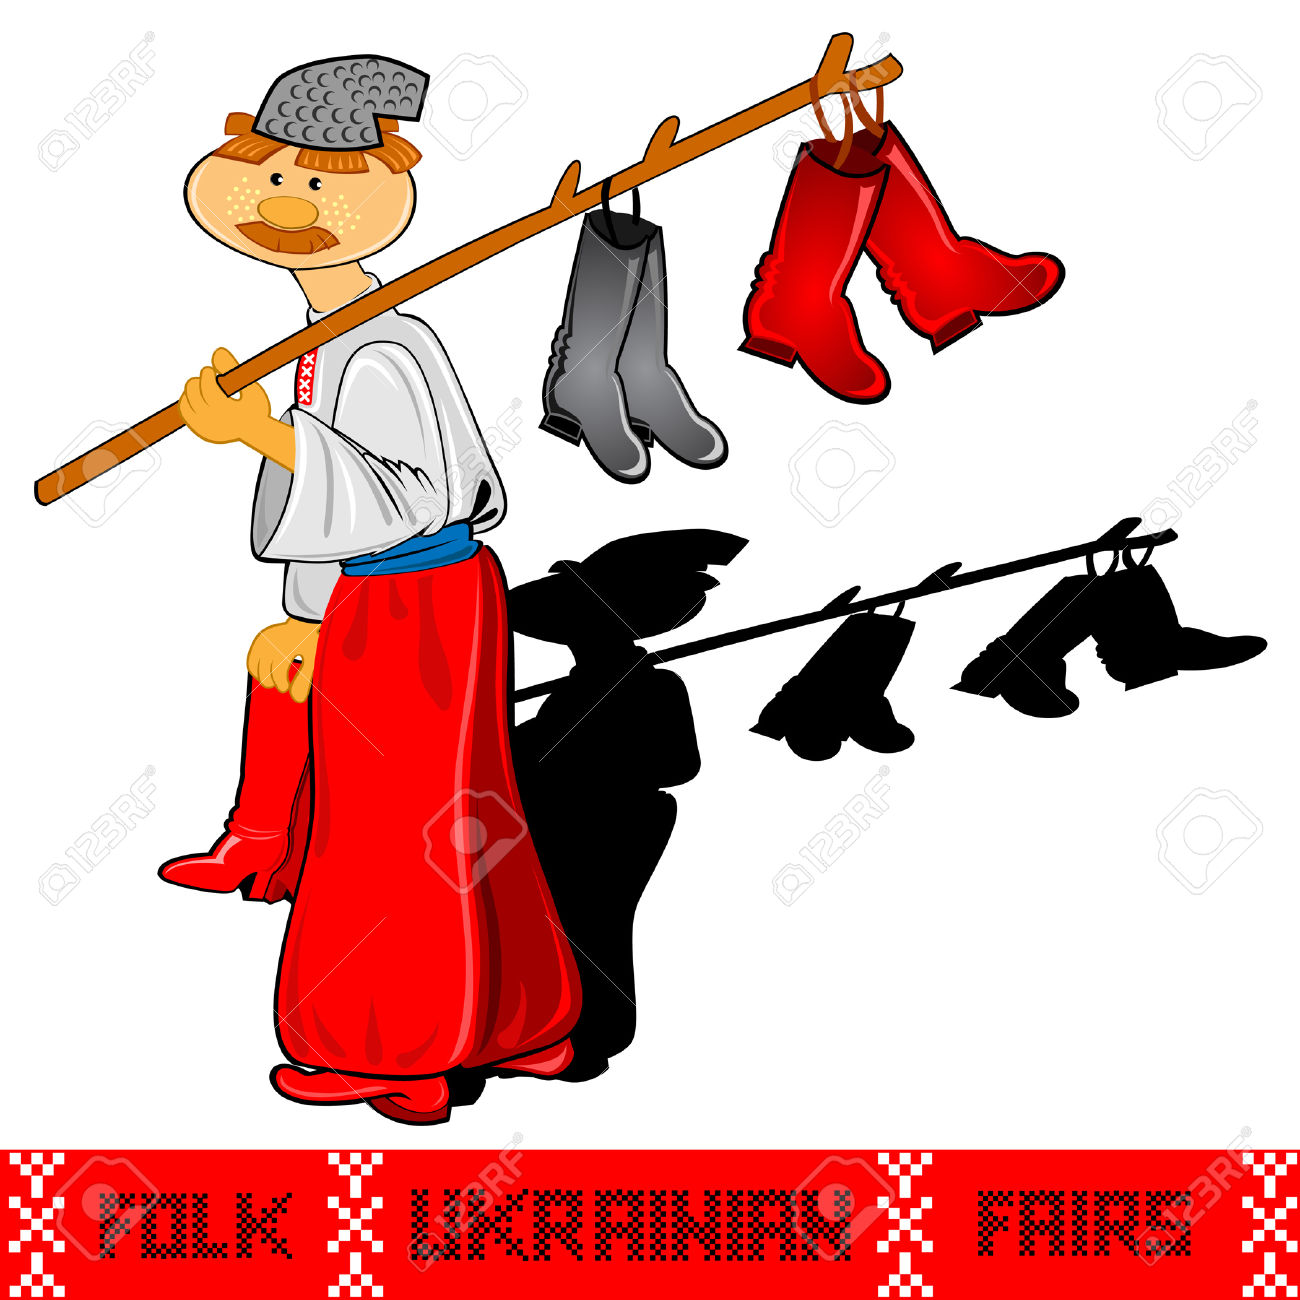 Shoemaker Ukrainian Folk Rairs Man With Shoes Craft Royalty Free.